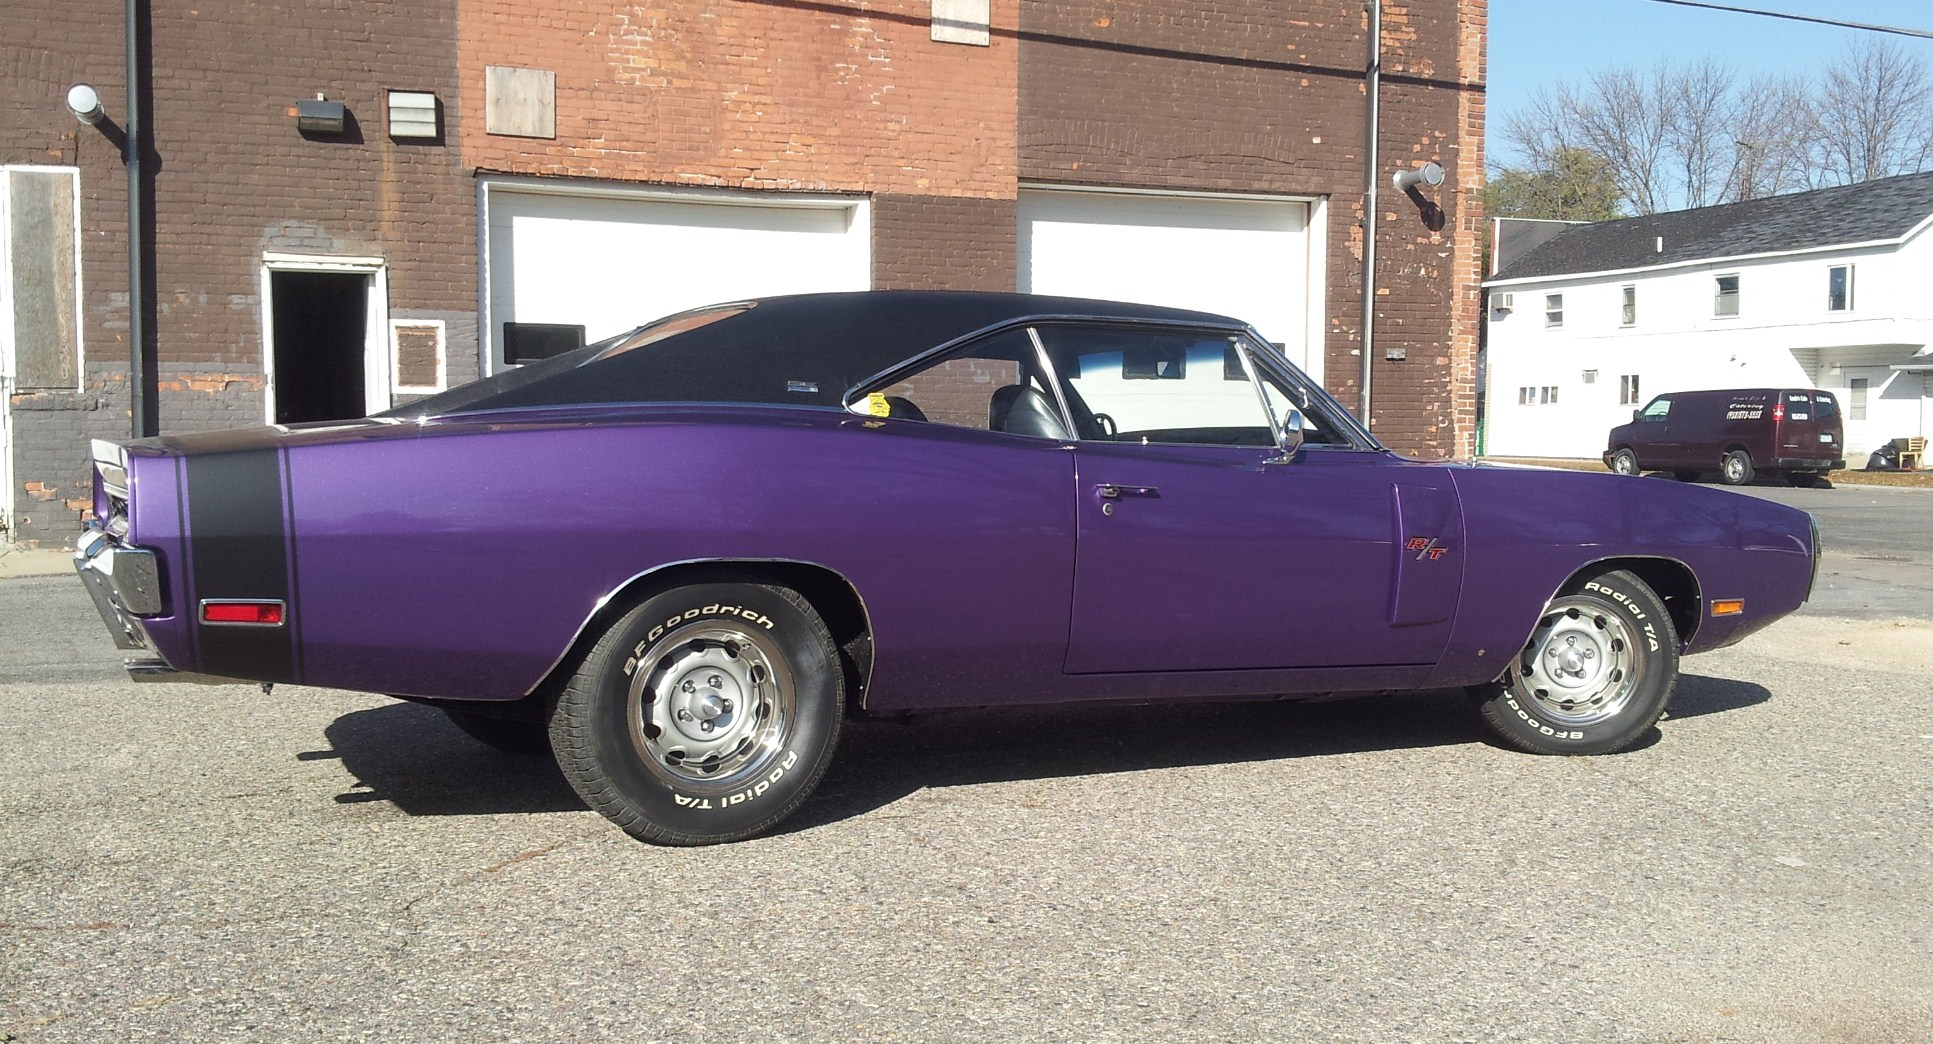 2013 Dodge Charger Se >> The R/T Garage Project Gallery - Mopar Restoration and Performance Services in Belle Plaine, MN